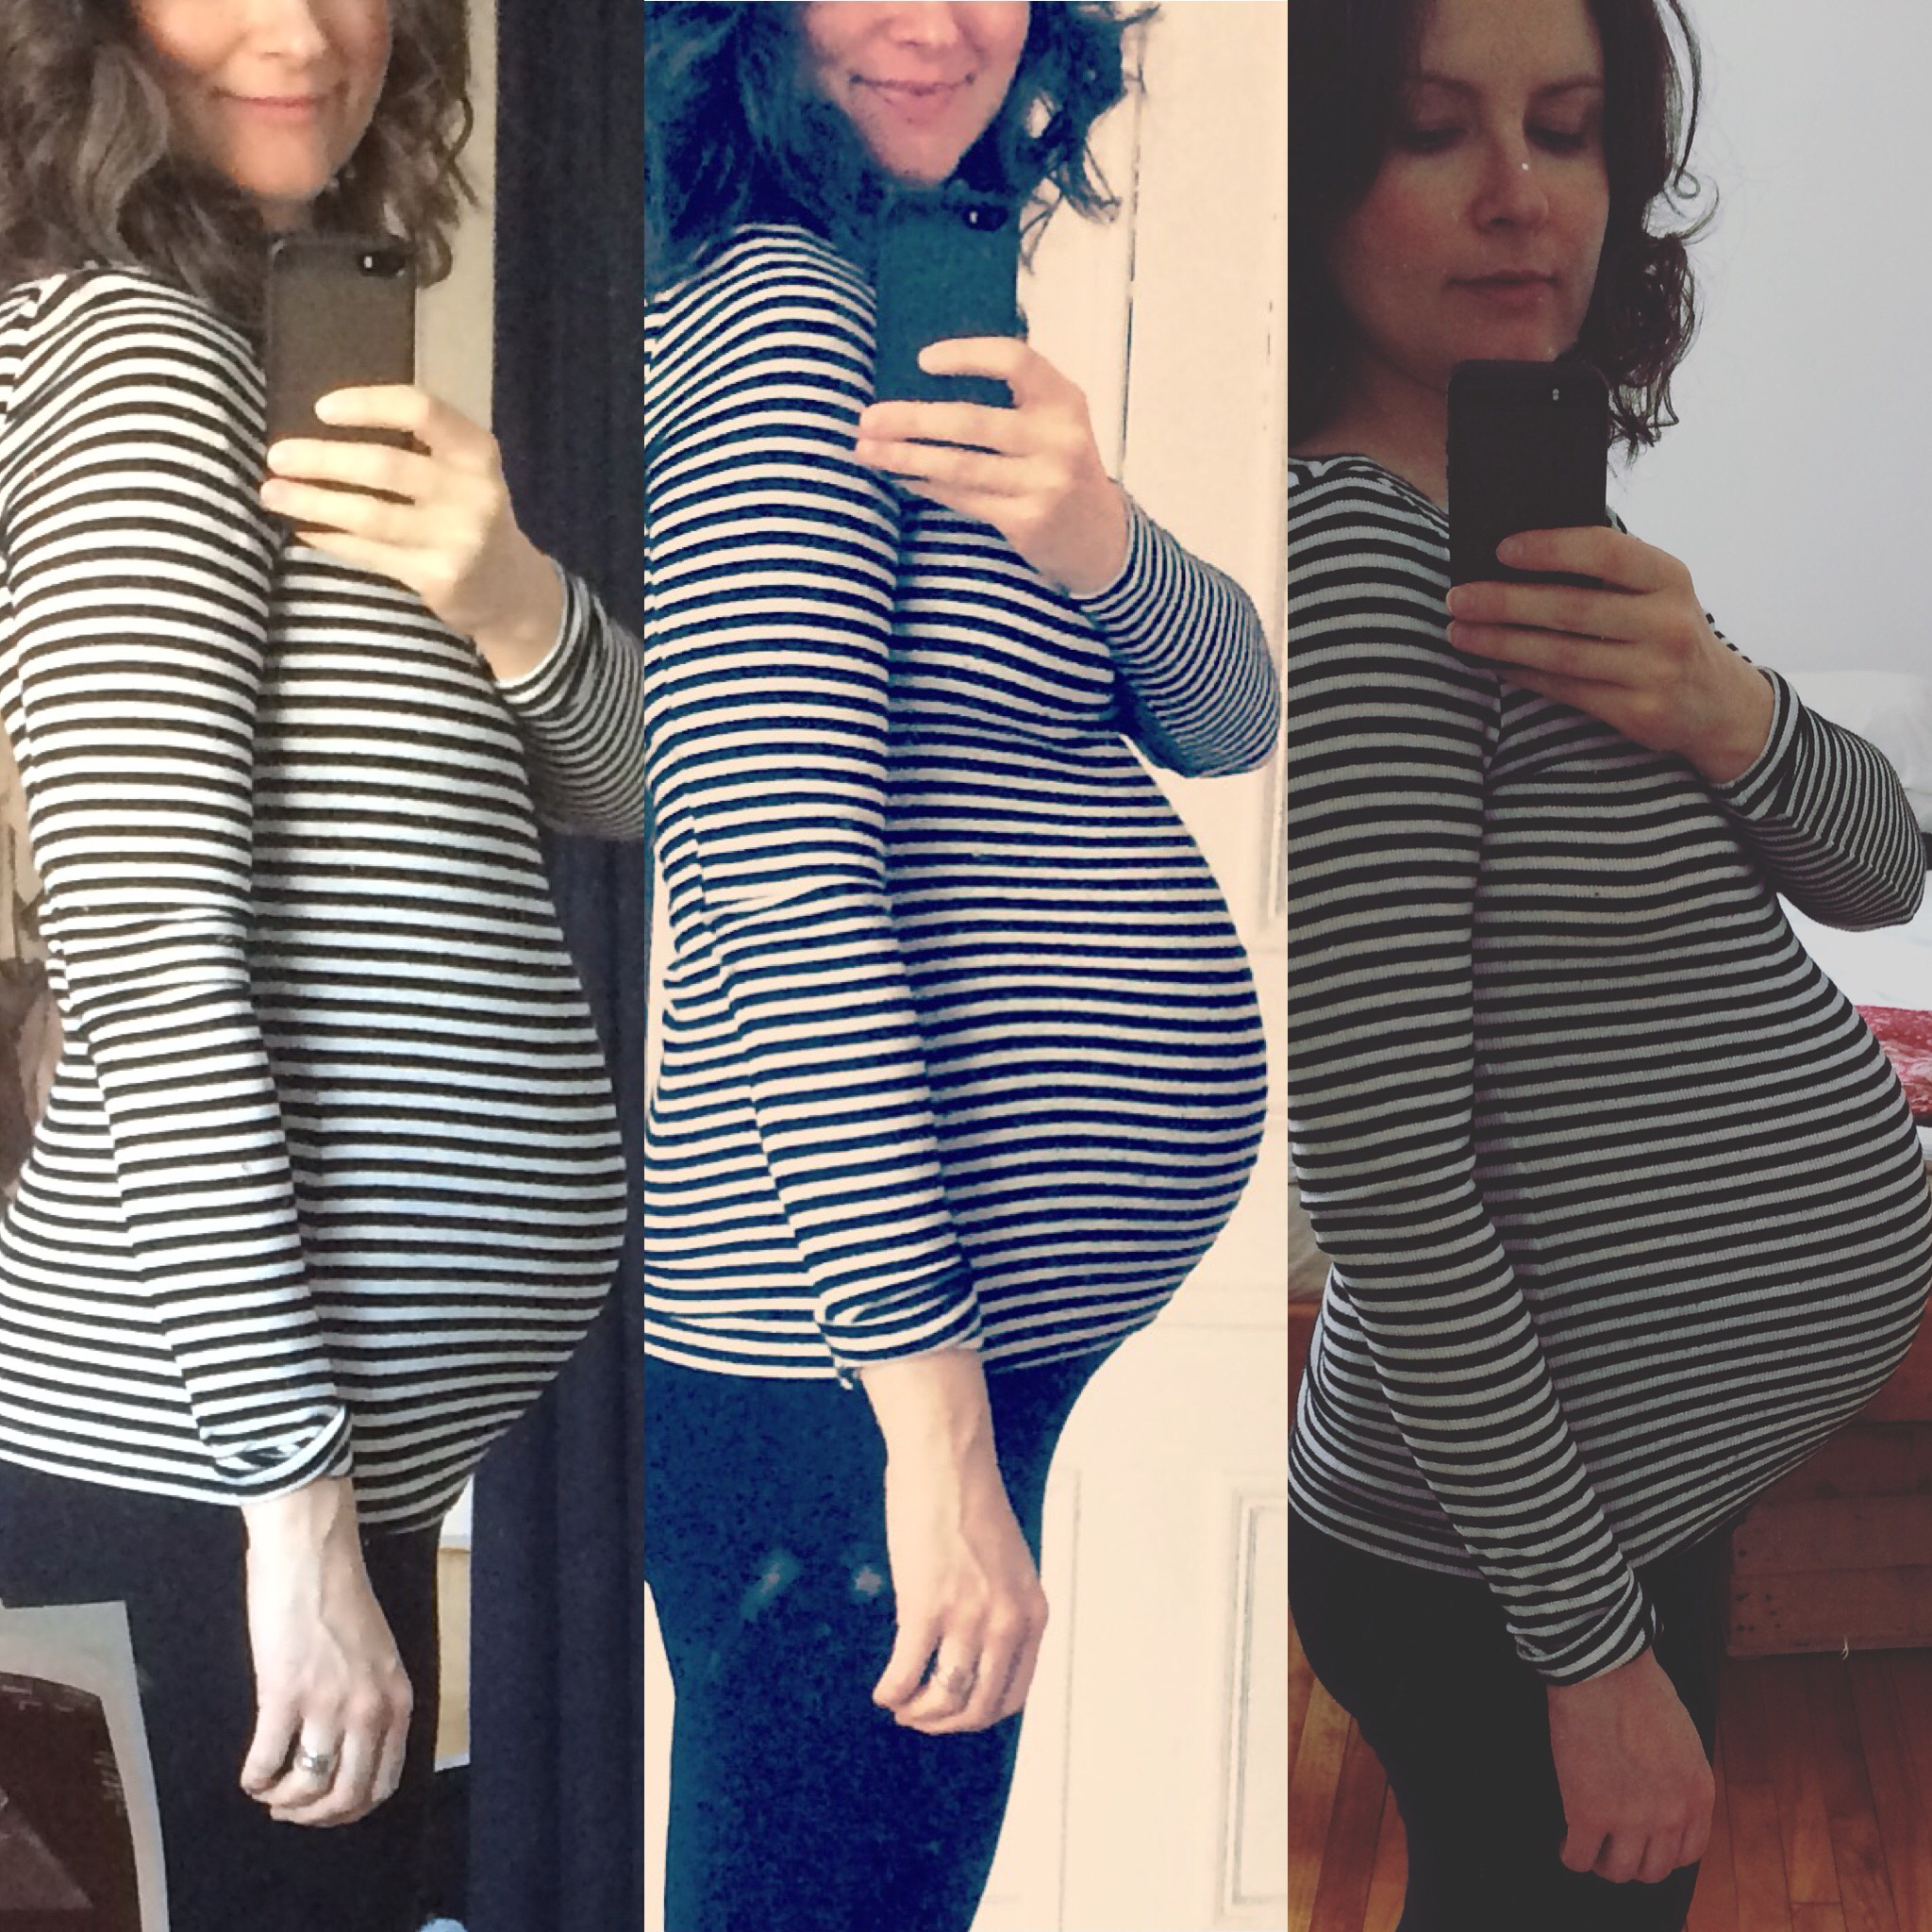 Baby bump progress! From left: 6 months, 7 months, 8 months! Though as of today, I'm about two weeks even further along.